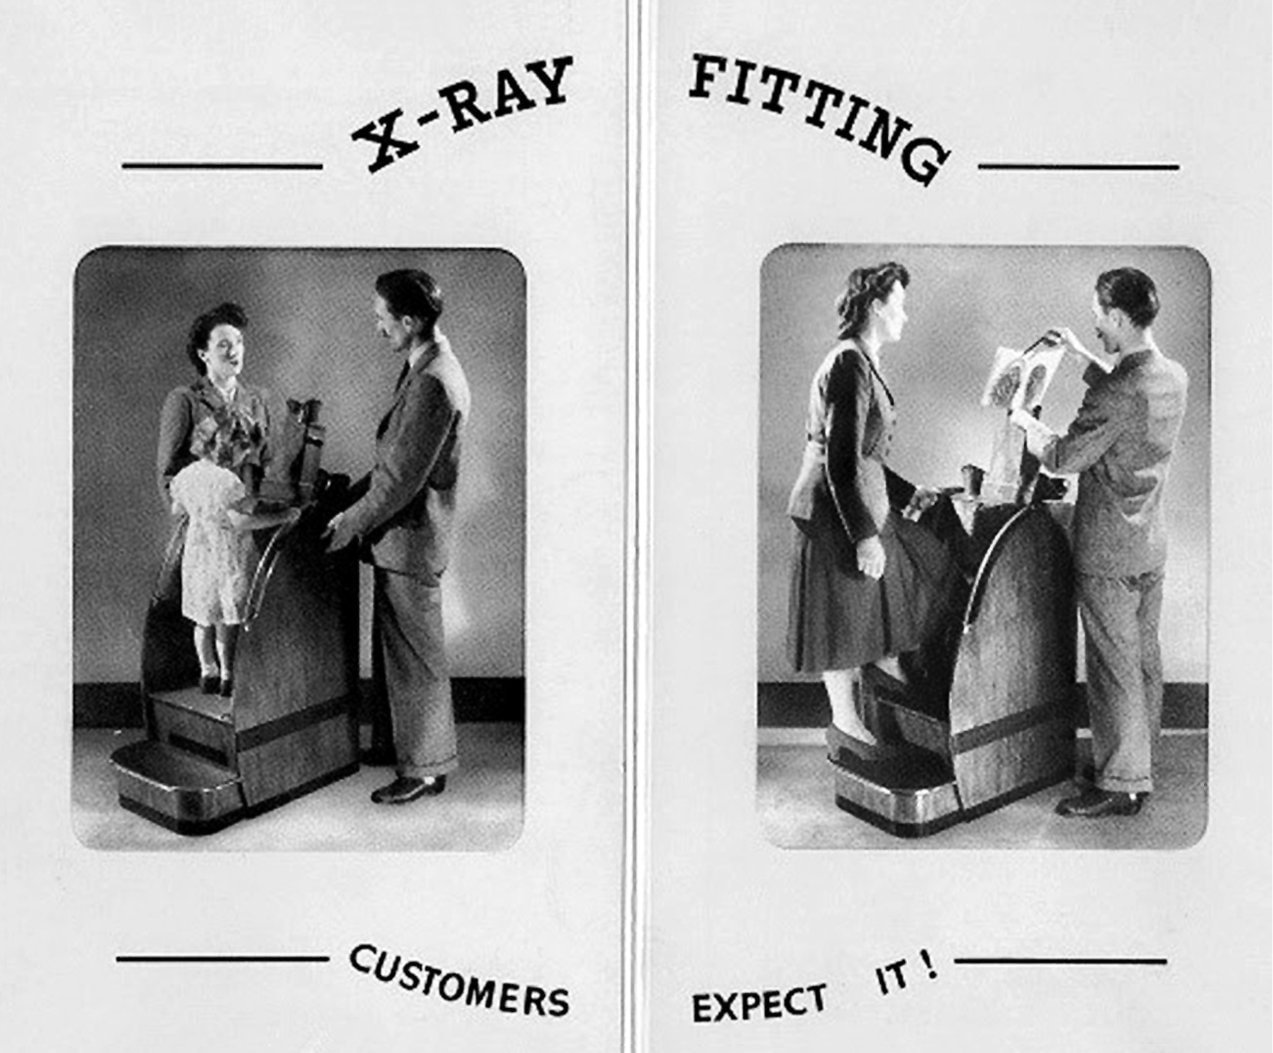 X-ray shoe fitting demonstration (c1930s)